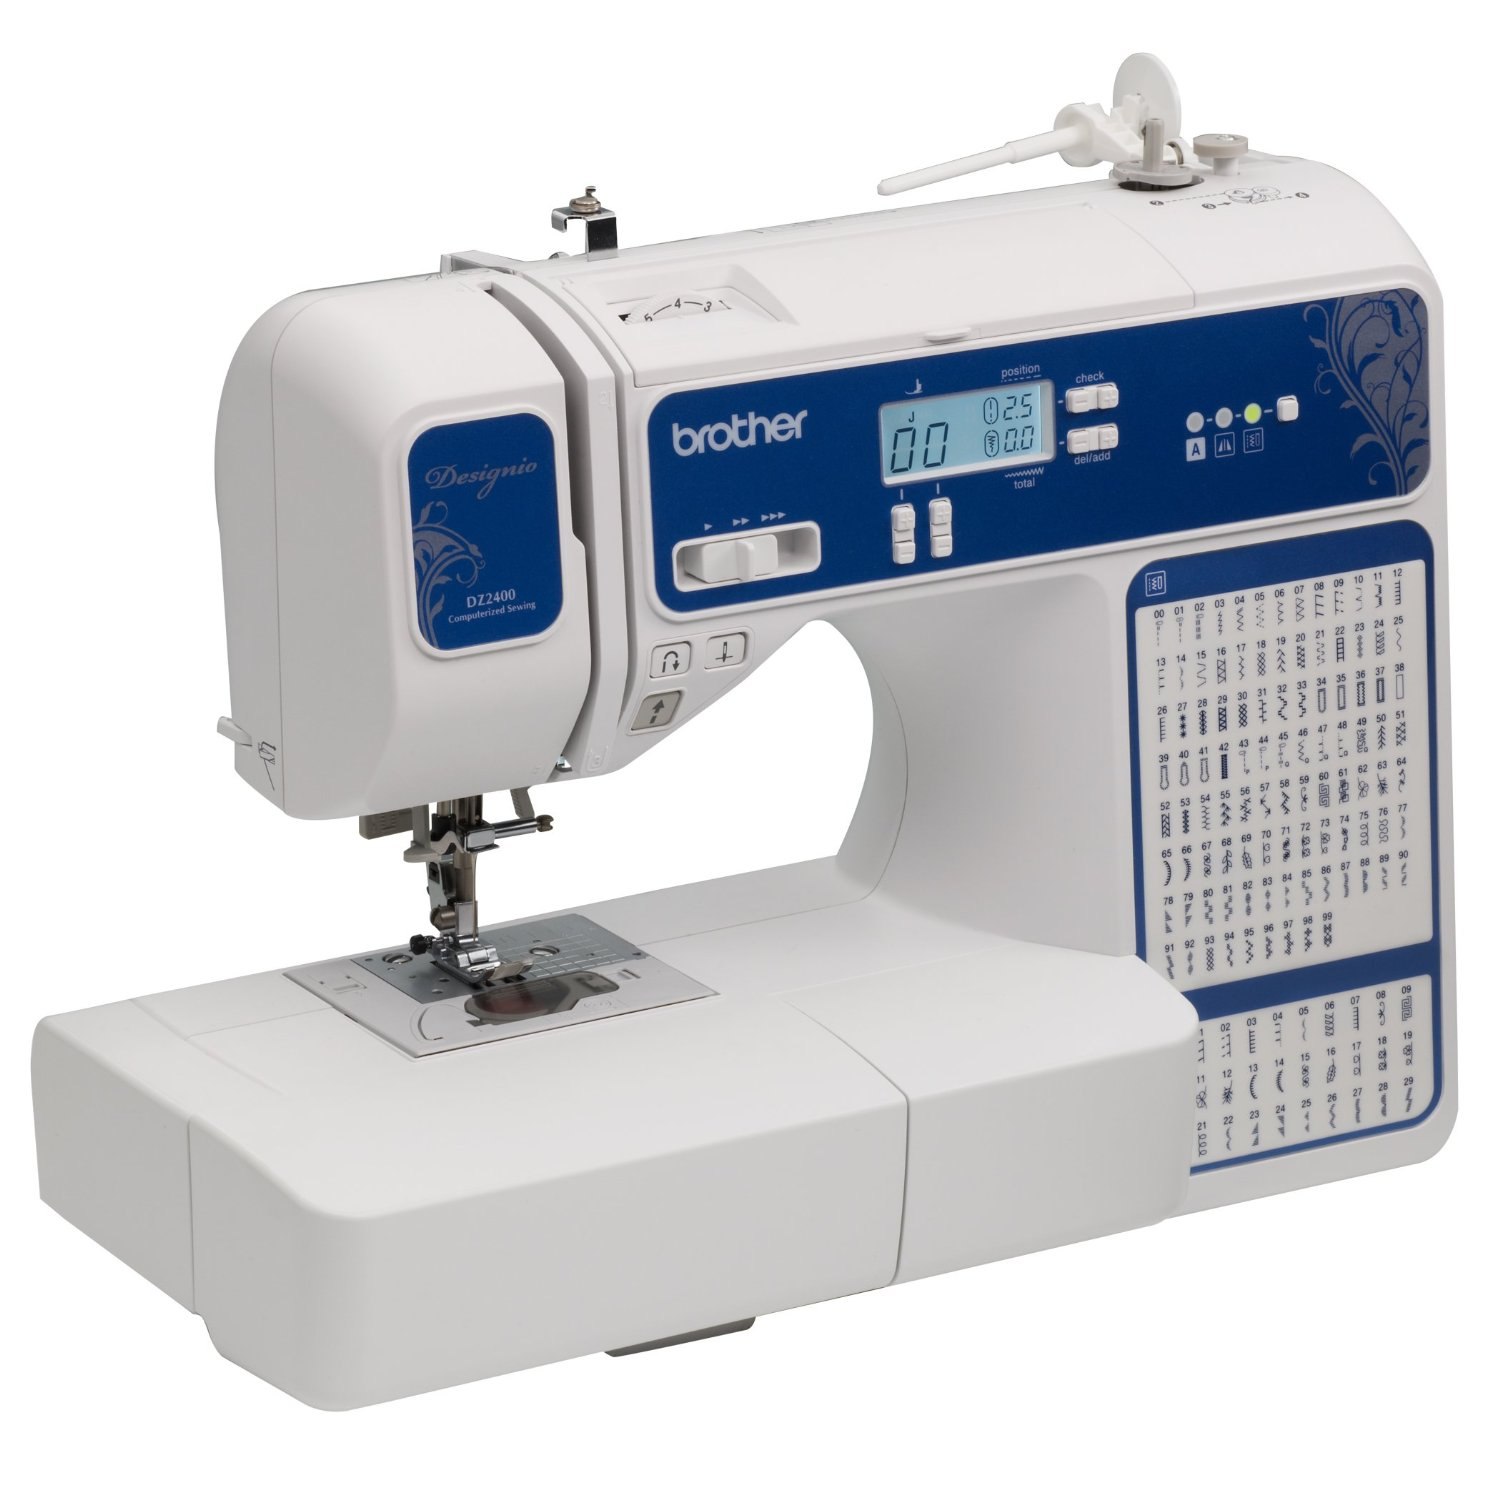 sewing machine quilting